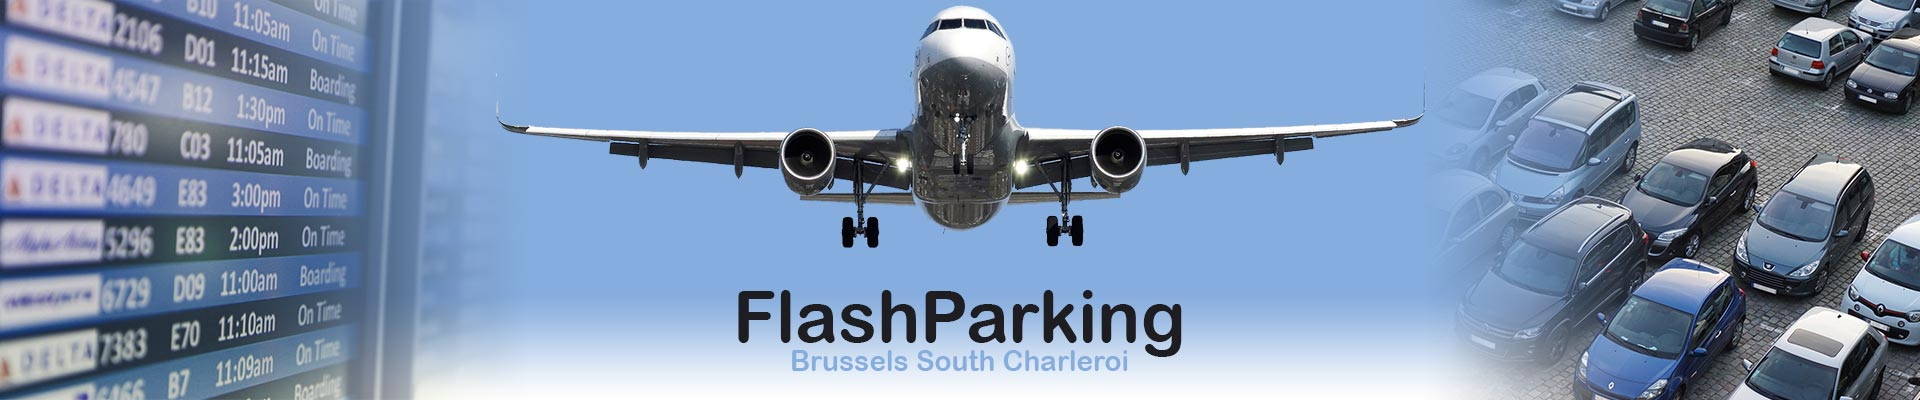 Flash parking low cost aéroport Parking Aéroport Charleroi